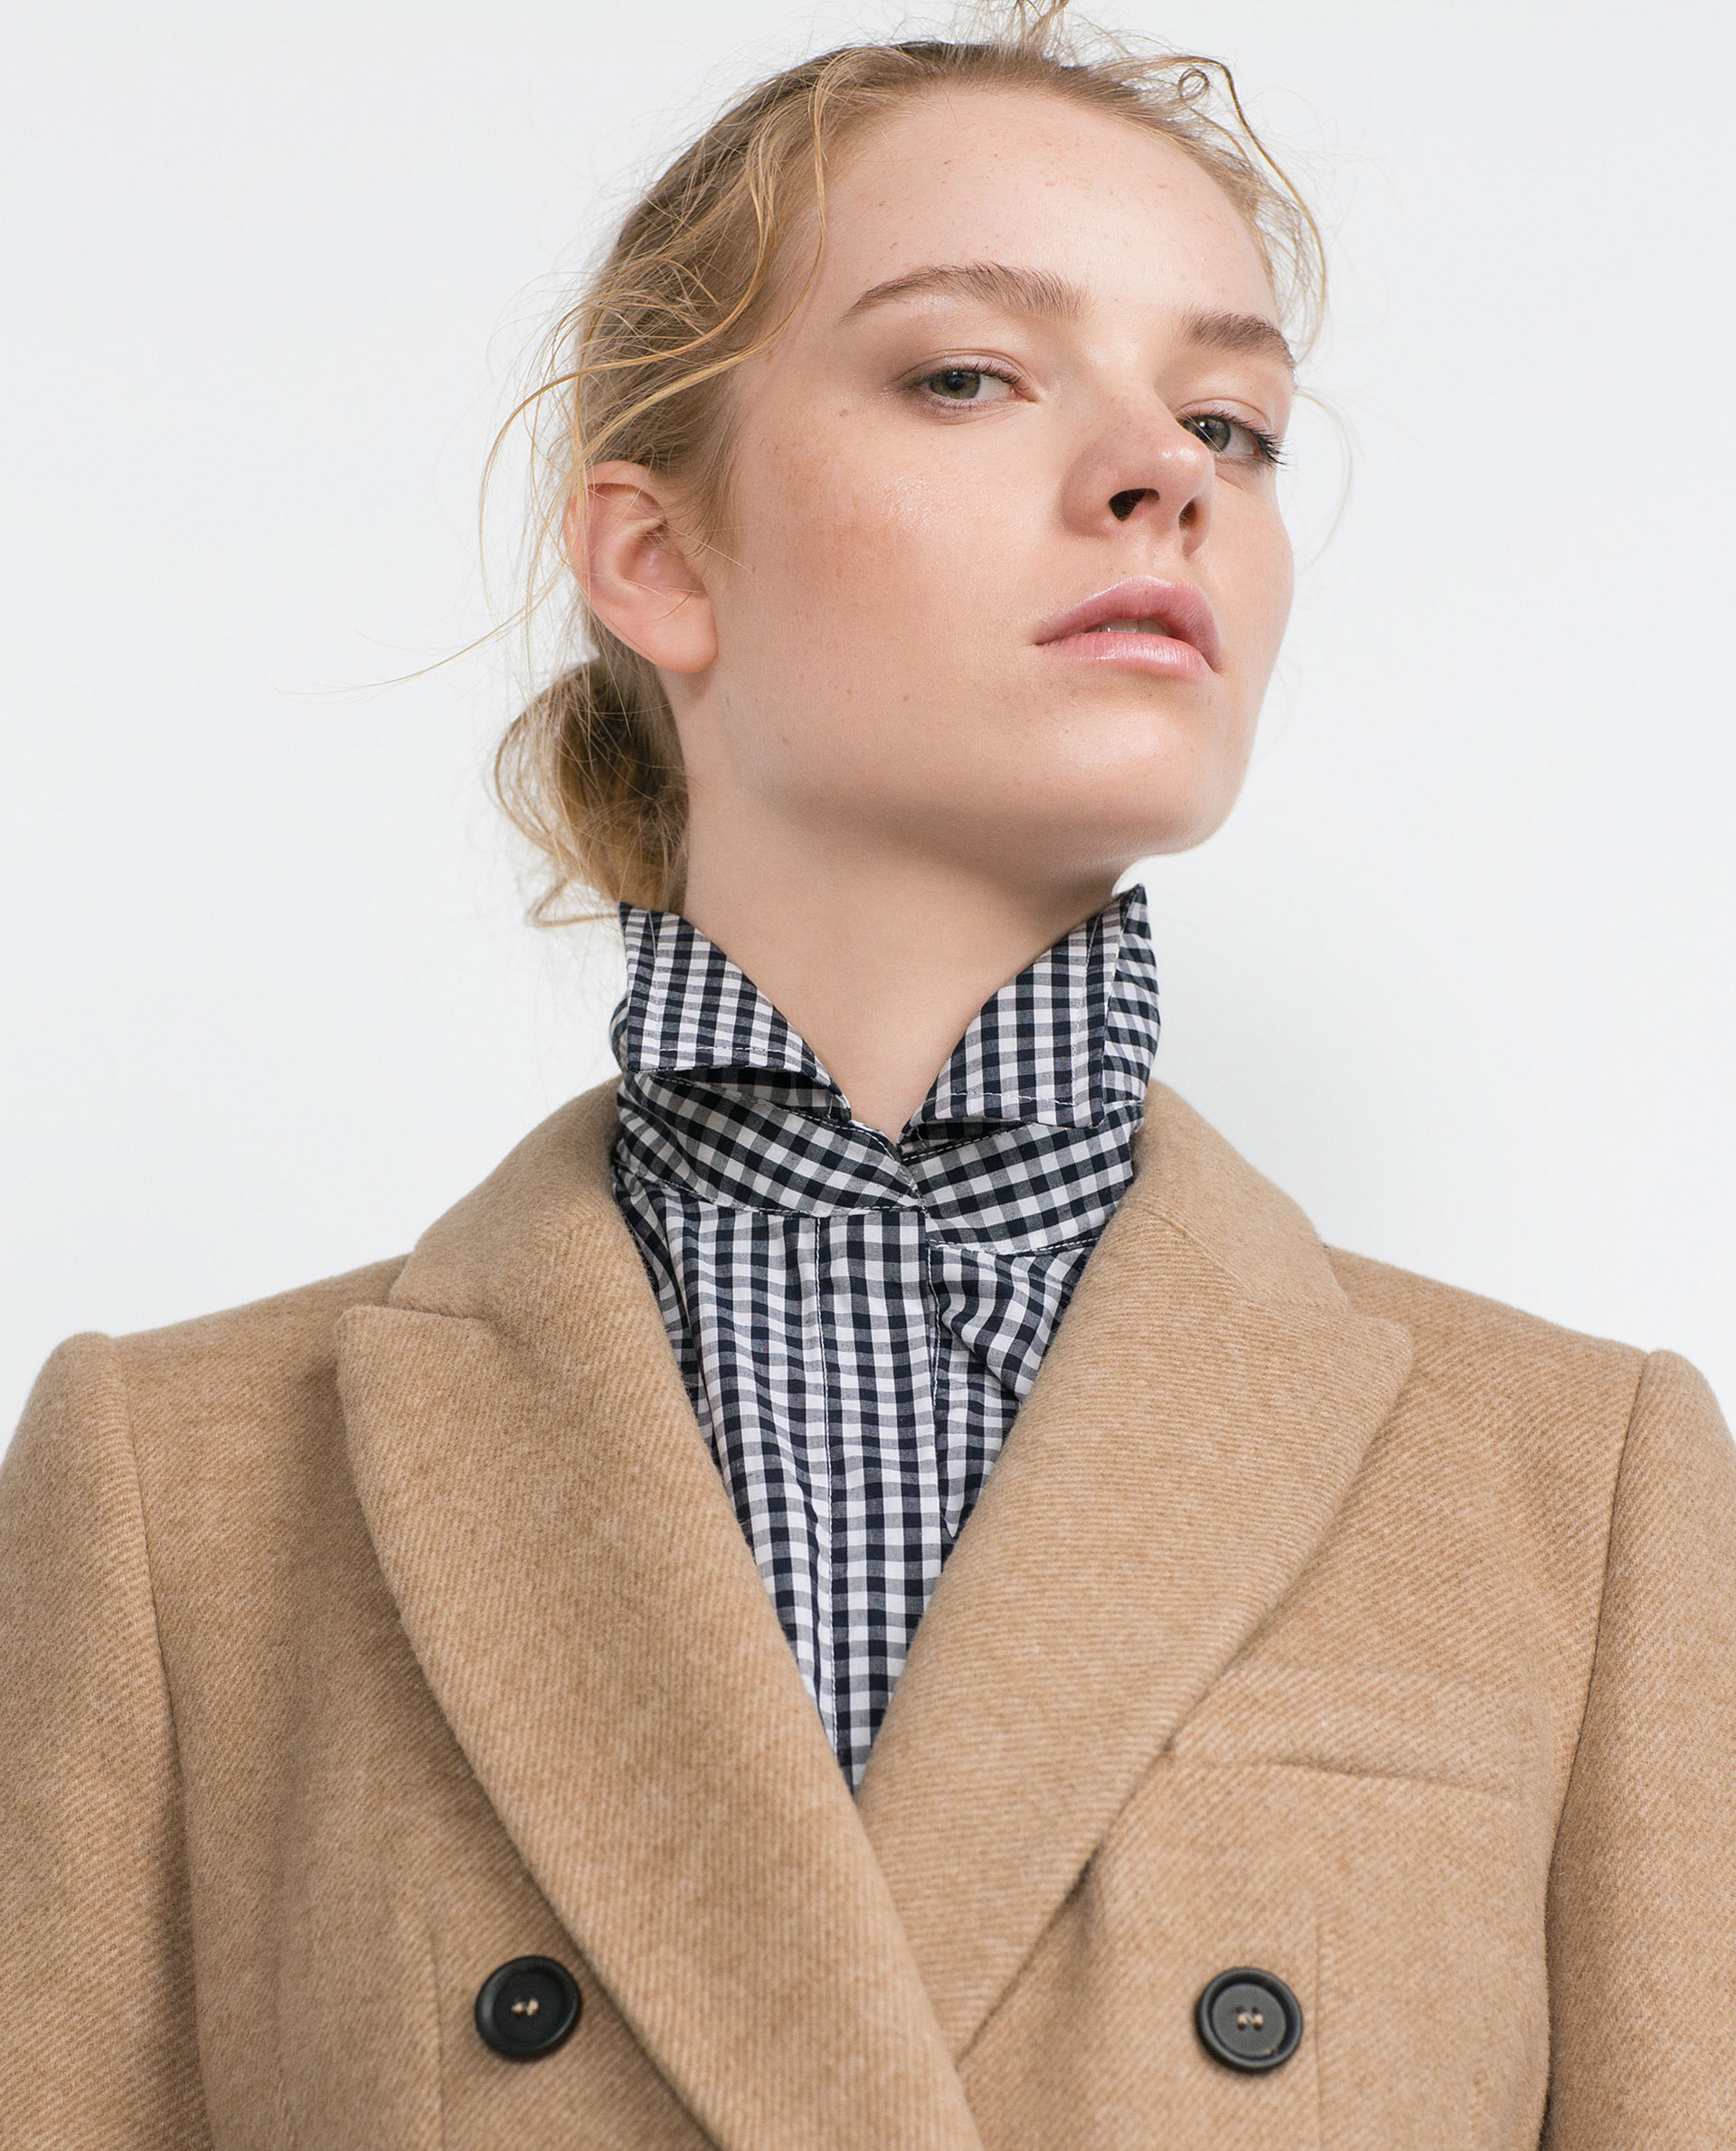 sophisticated technologies reasonably priced san francisco MANTEAU MASCULIN - Tout voir - Manteaux - FEMME | ZARA France